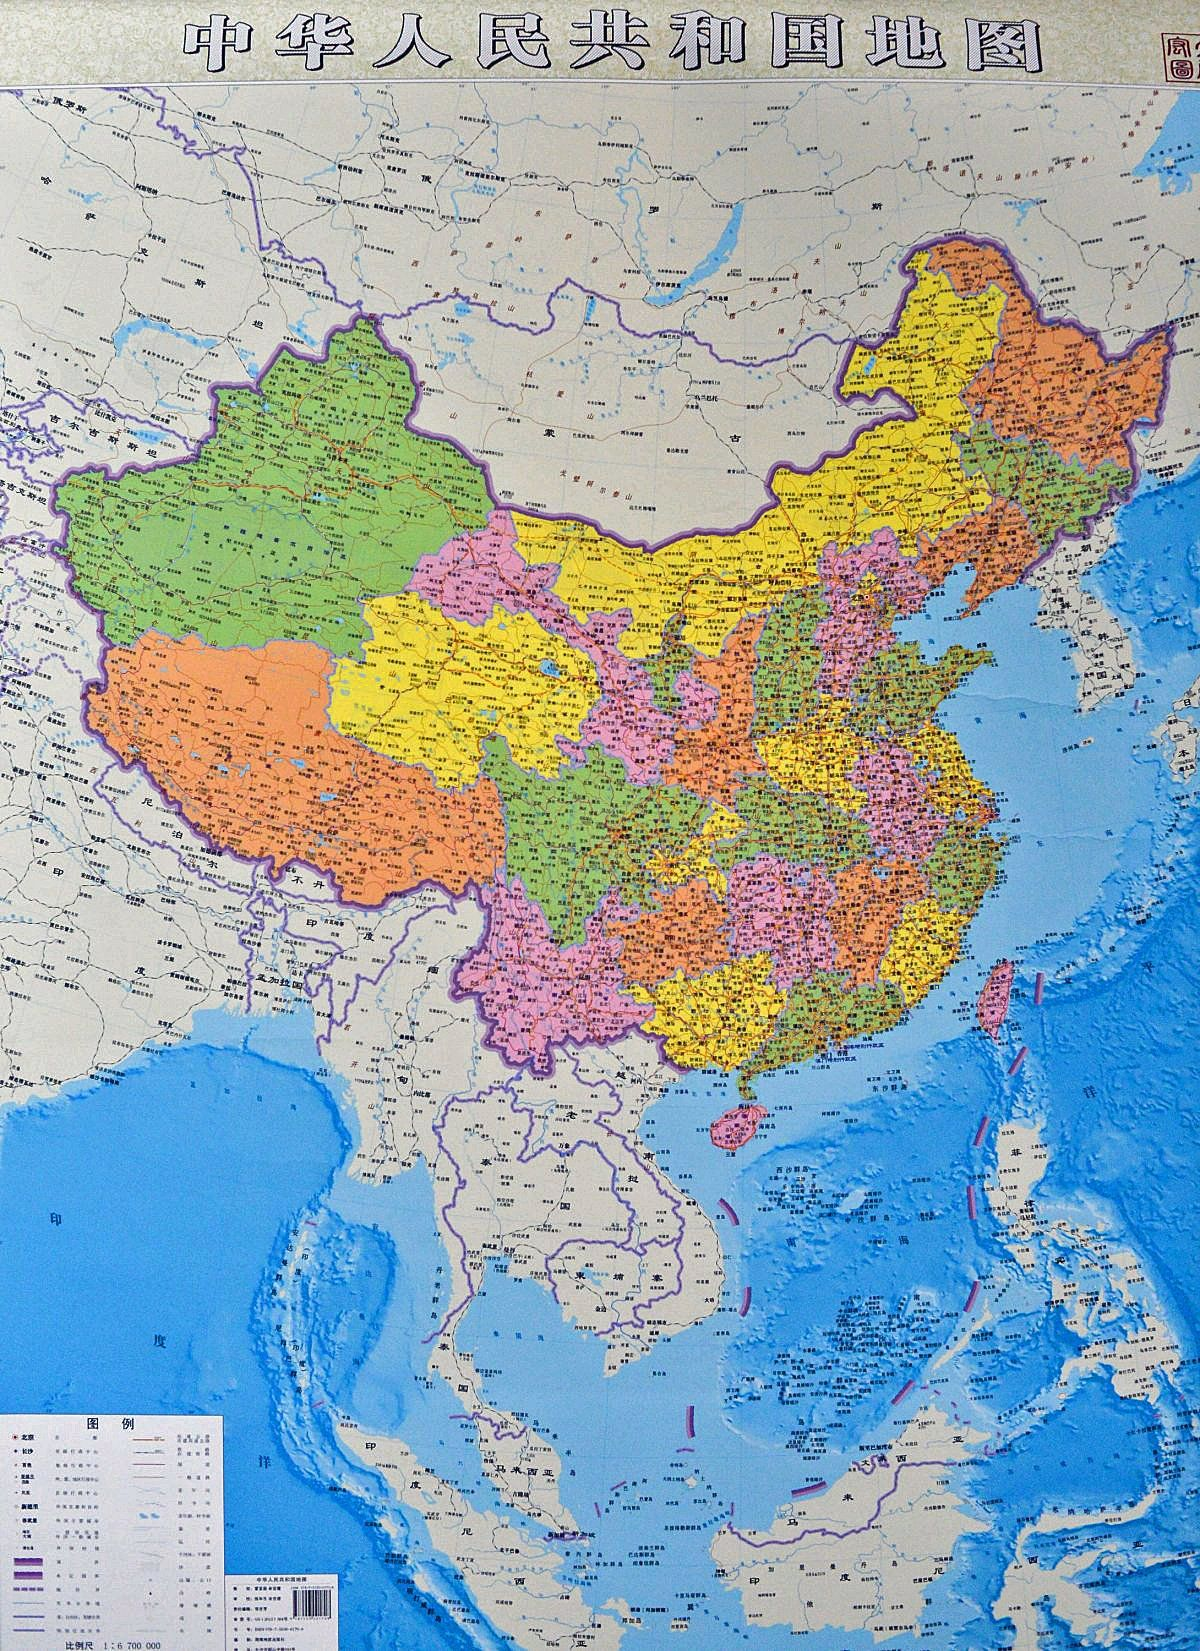 Chinas new map and south china sea business insider maps china publishes new map chinas latest published map shows its claim over the south china sea by marking ten dash lines around the region just off the gumiabroncs Images